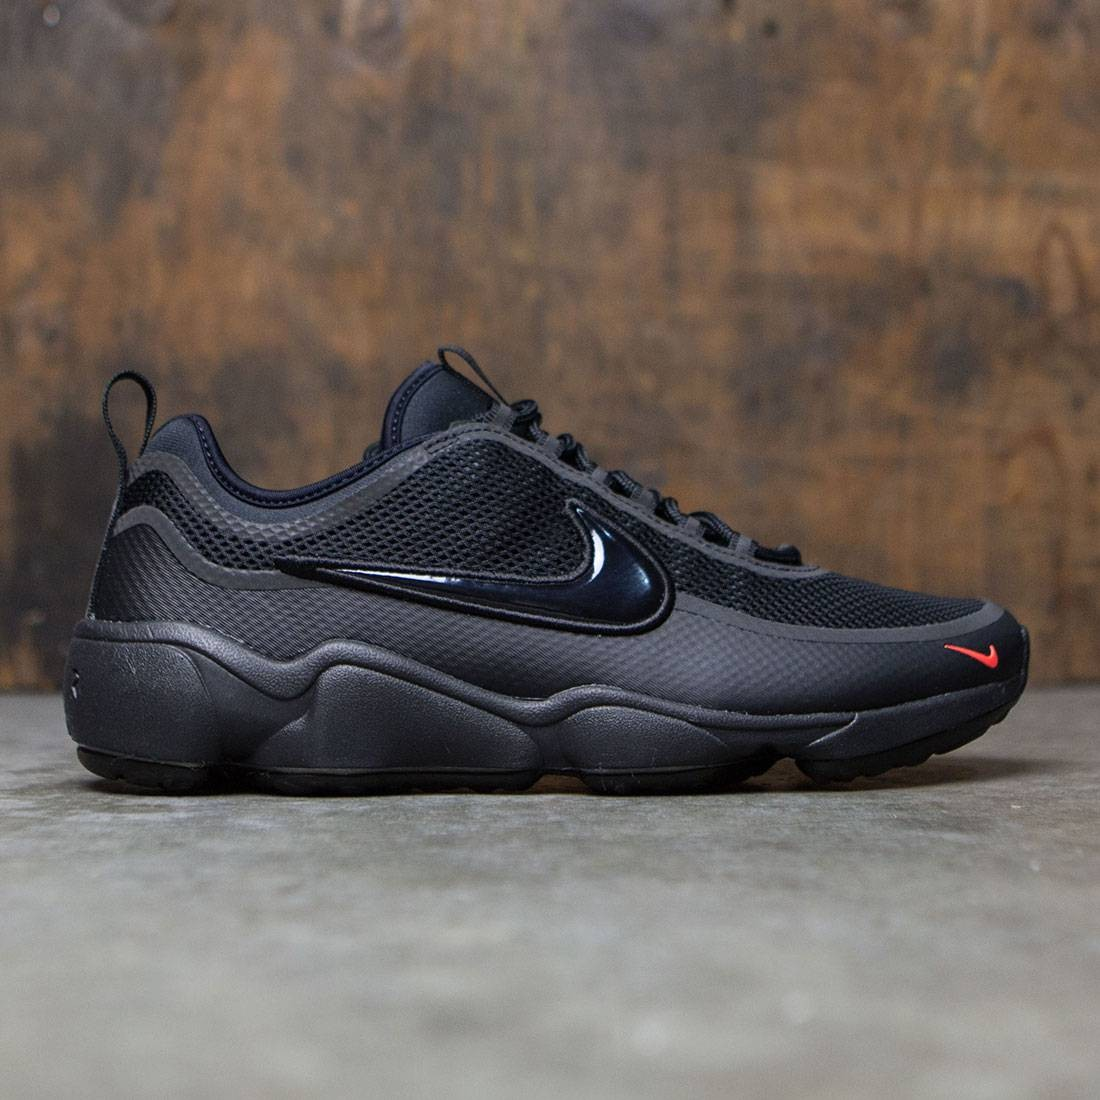 nike zoom spiridon ultra black